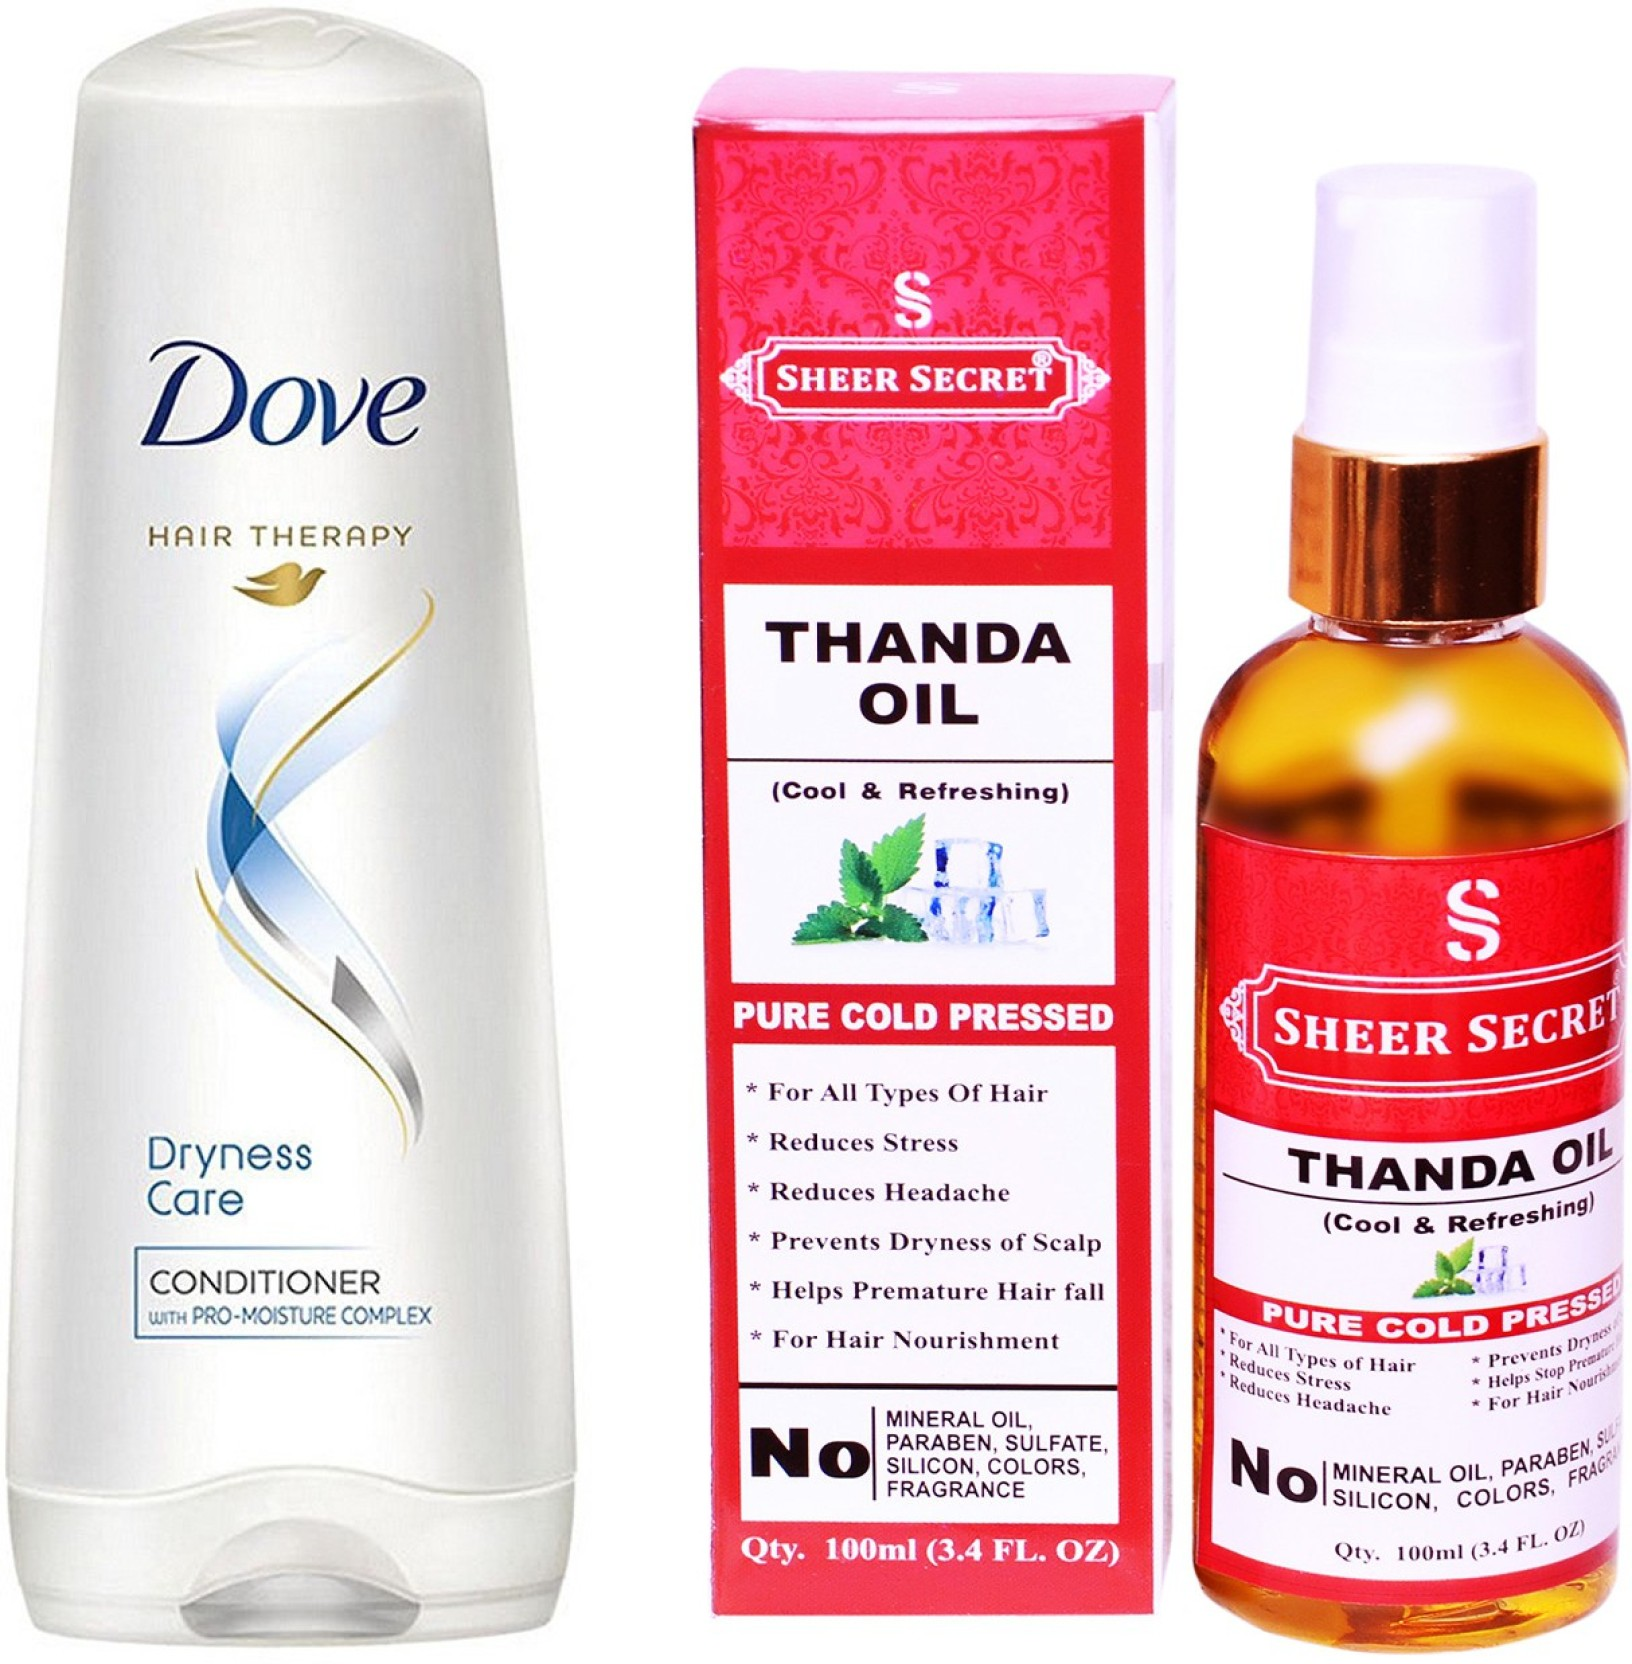 Dove 180 Ml Dryness Care Conditioner With Sheer Secret Cold Pressed Head Shoulder Shampoo Refreshing Menthol 180ml On Offer